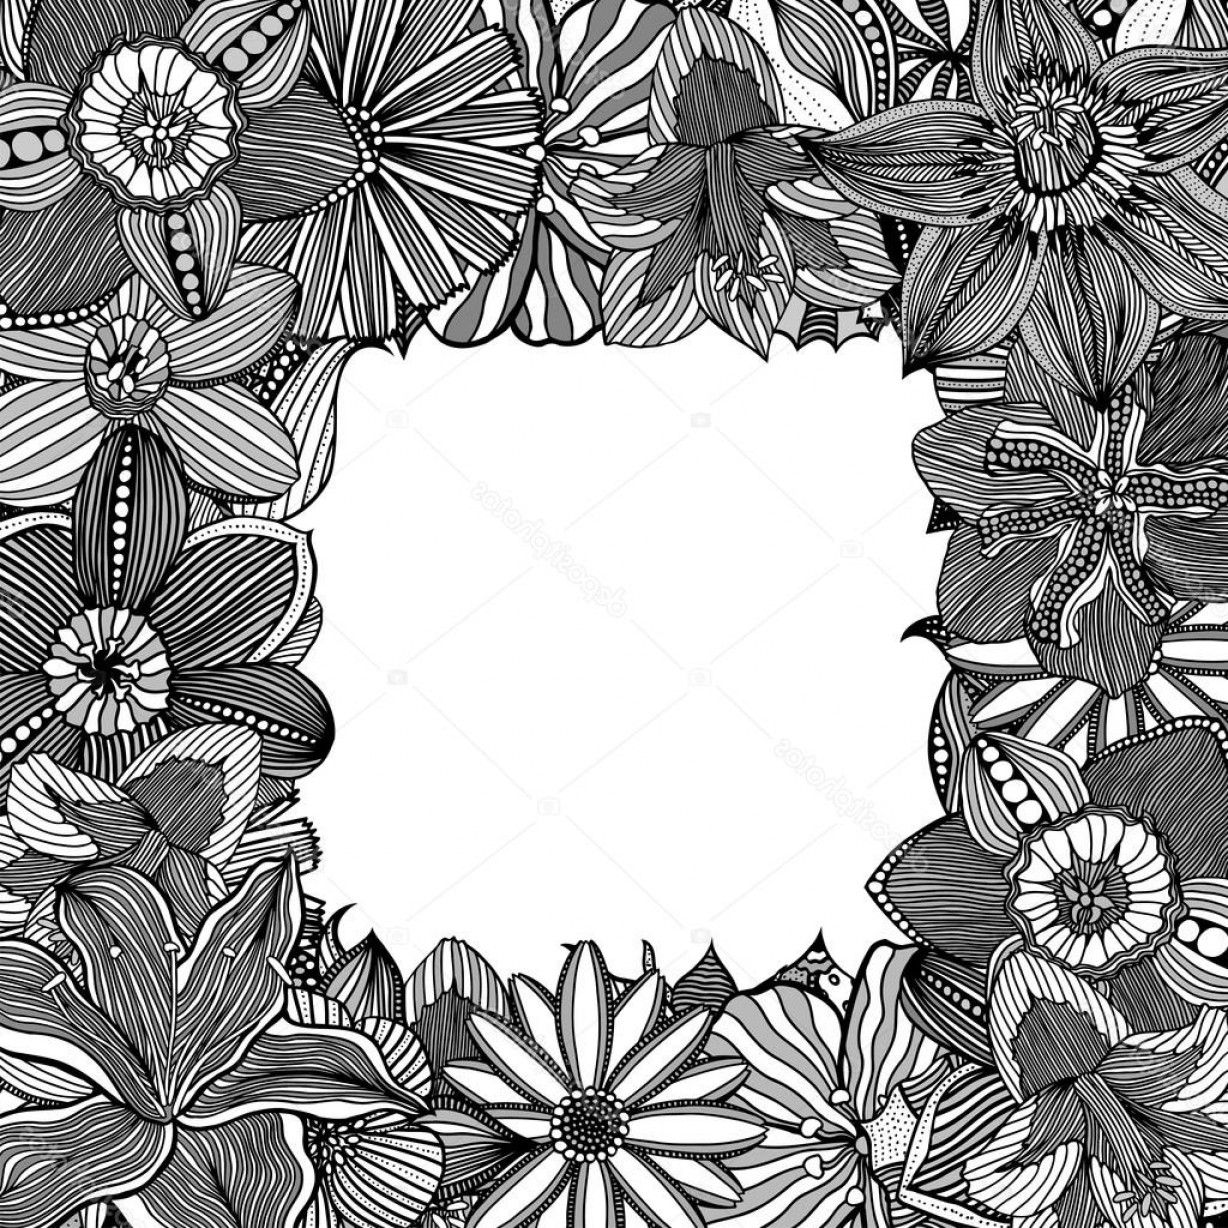 Zentangle Vector: Stock Illustration Floral Zentangle Vector Illustration